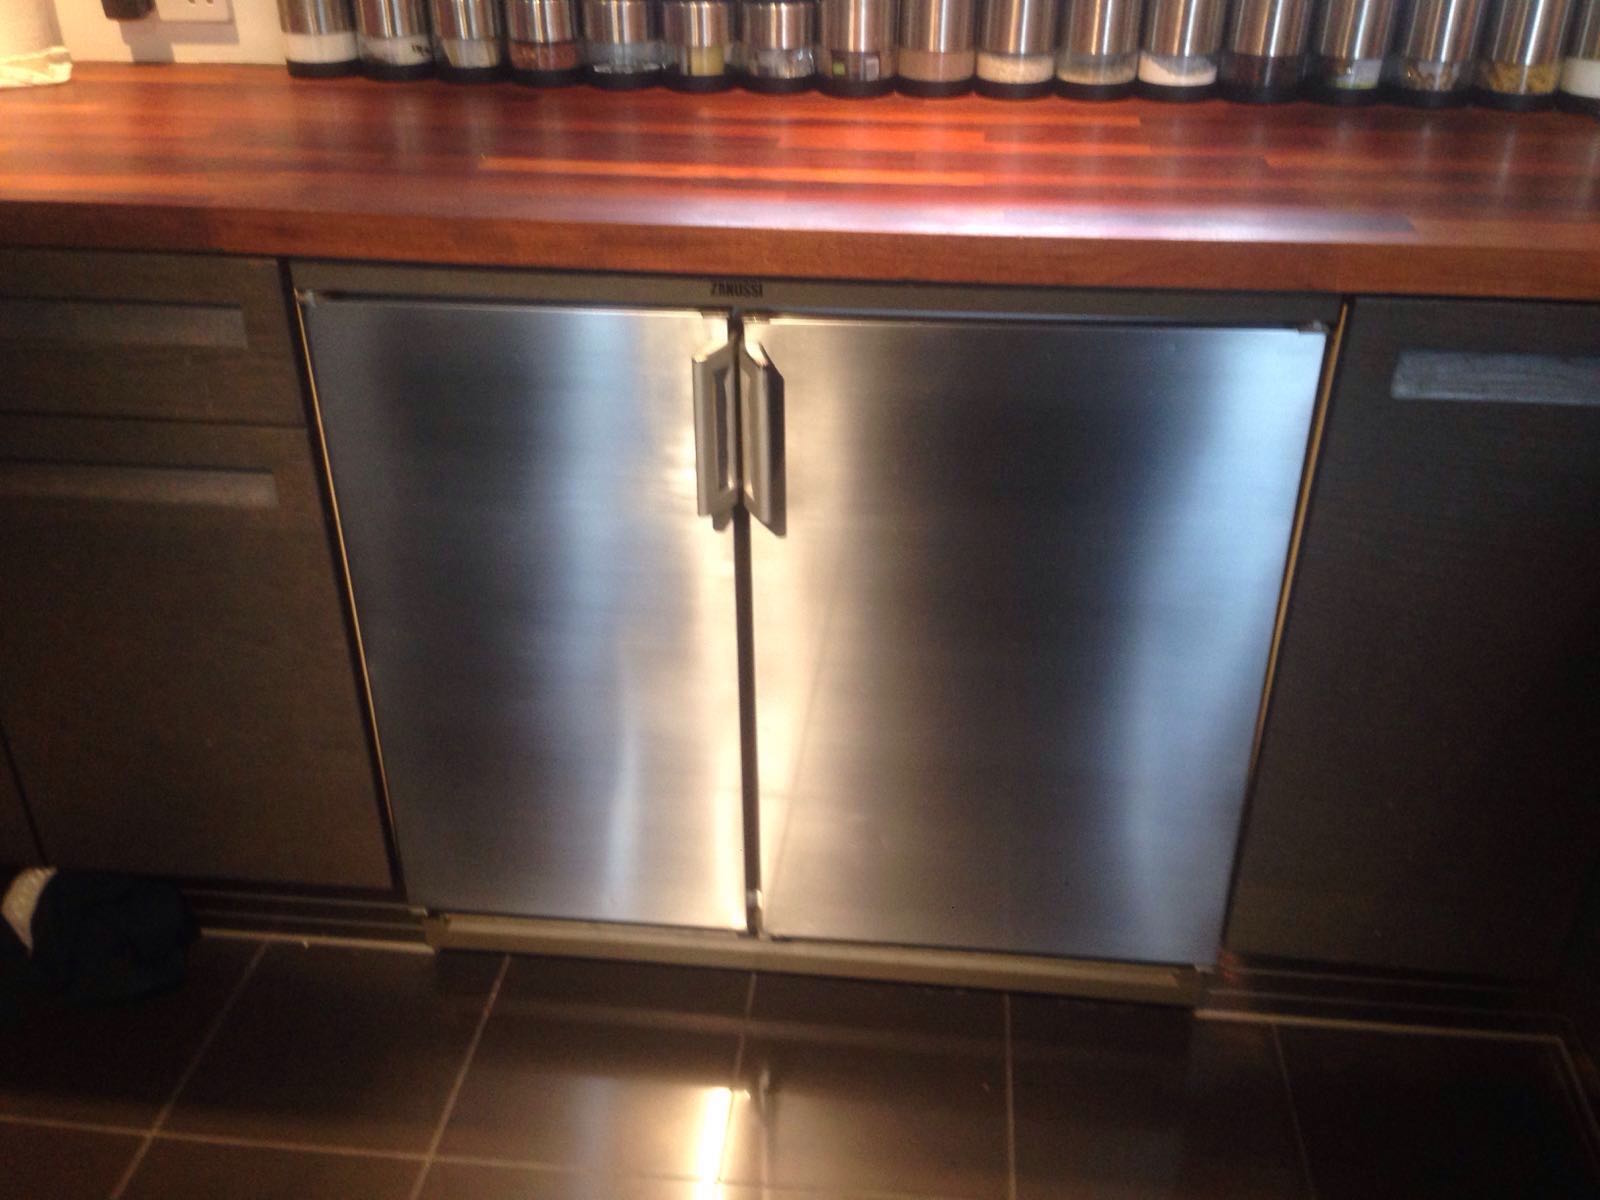 Stainless Steel Fridge - After